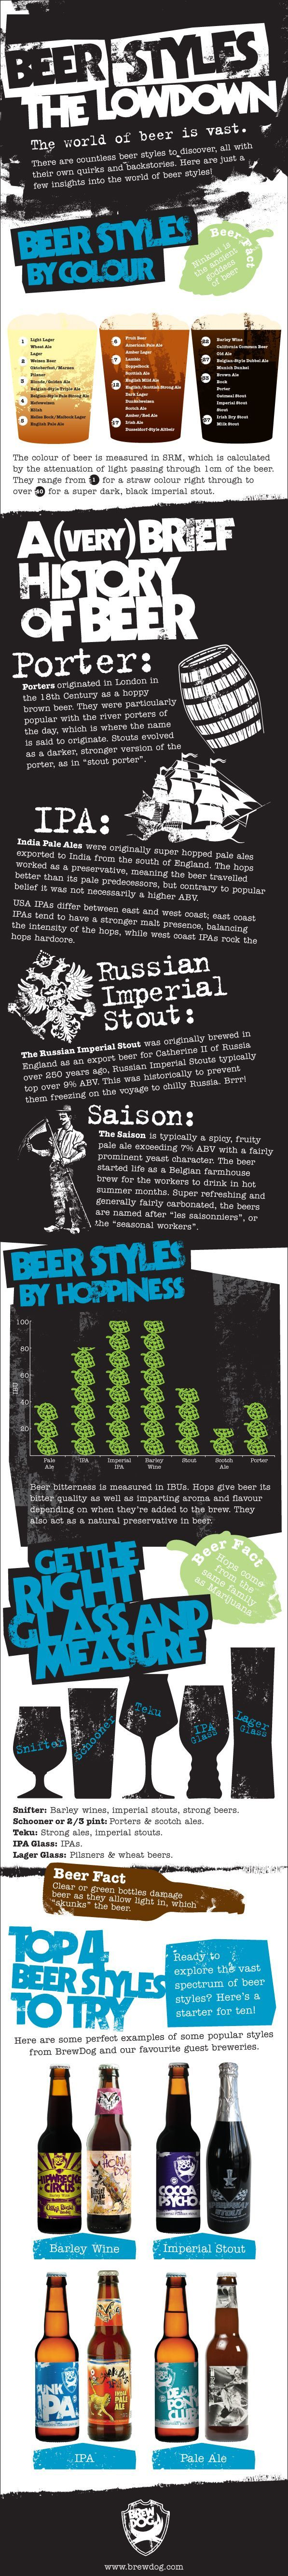 #craftbeer styles & history of beer #infographic